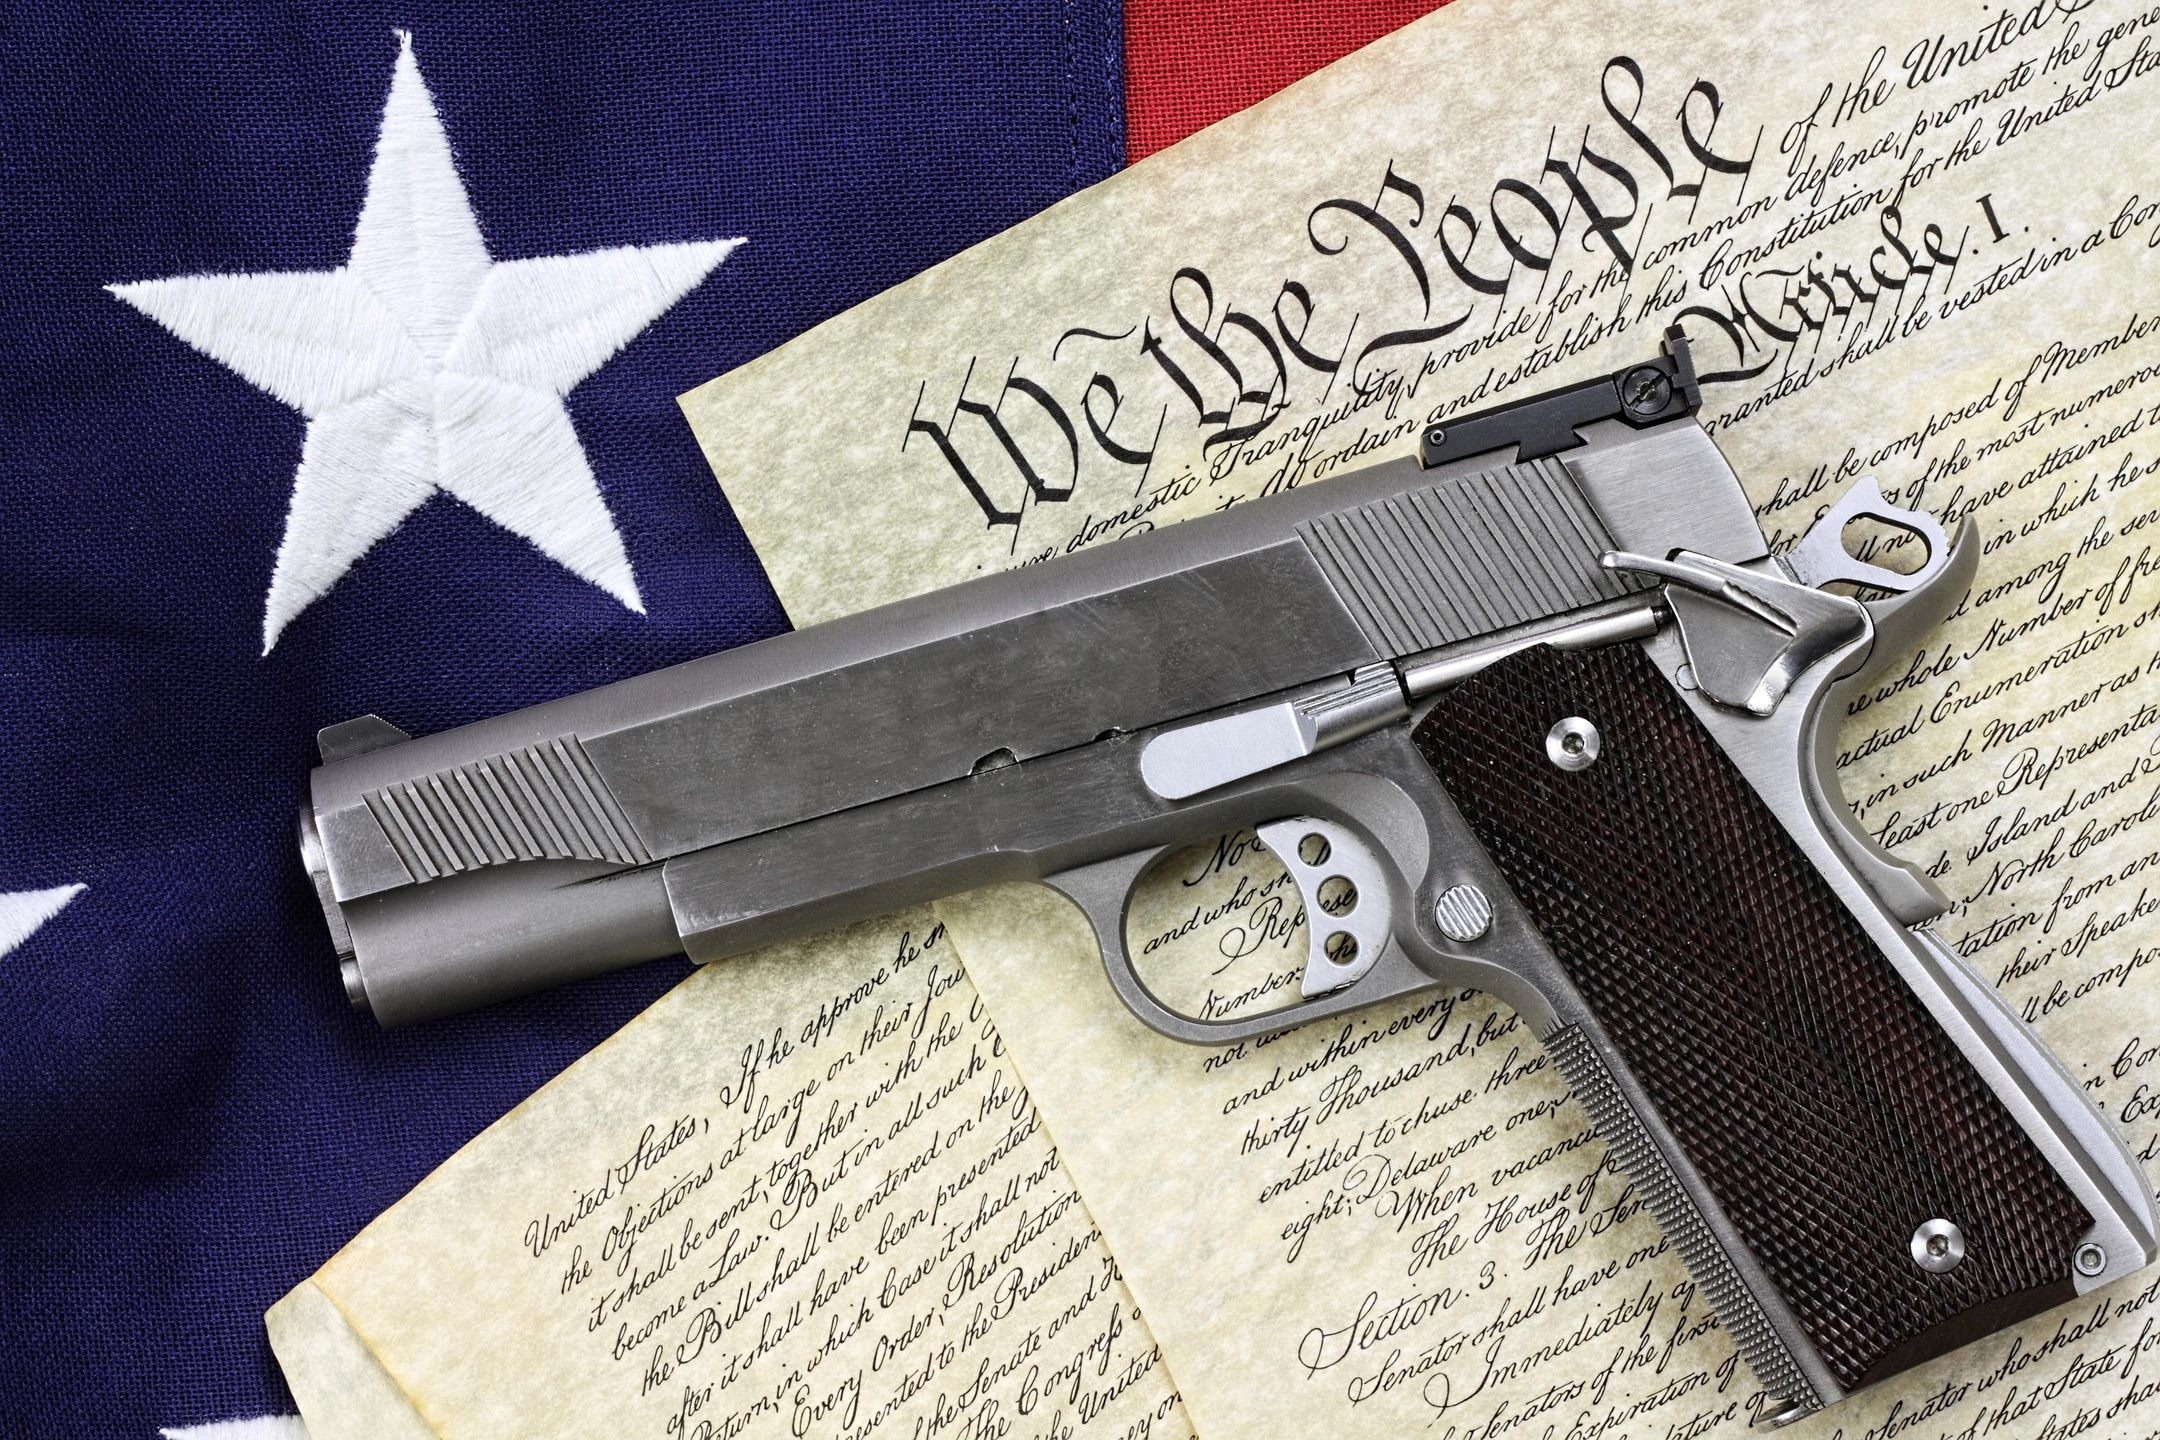 Applying for a Pistol License – Do I Need an Attorney?